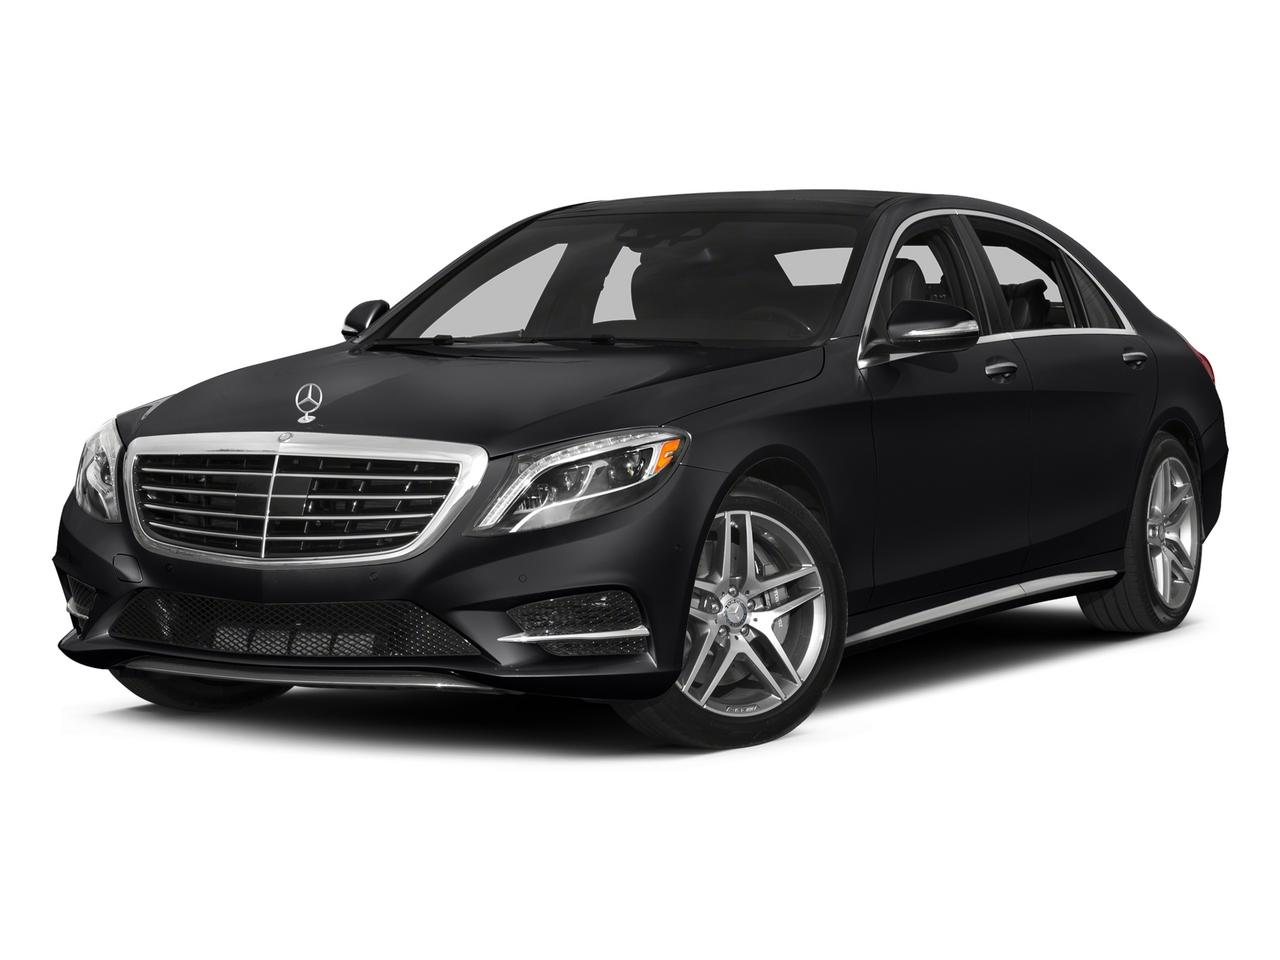 2015 Mercedes-Benz S-Class Vehicle Photo in Cary, NC 27511